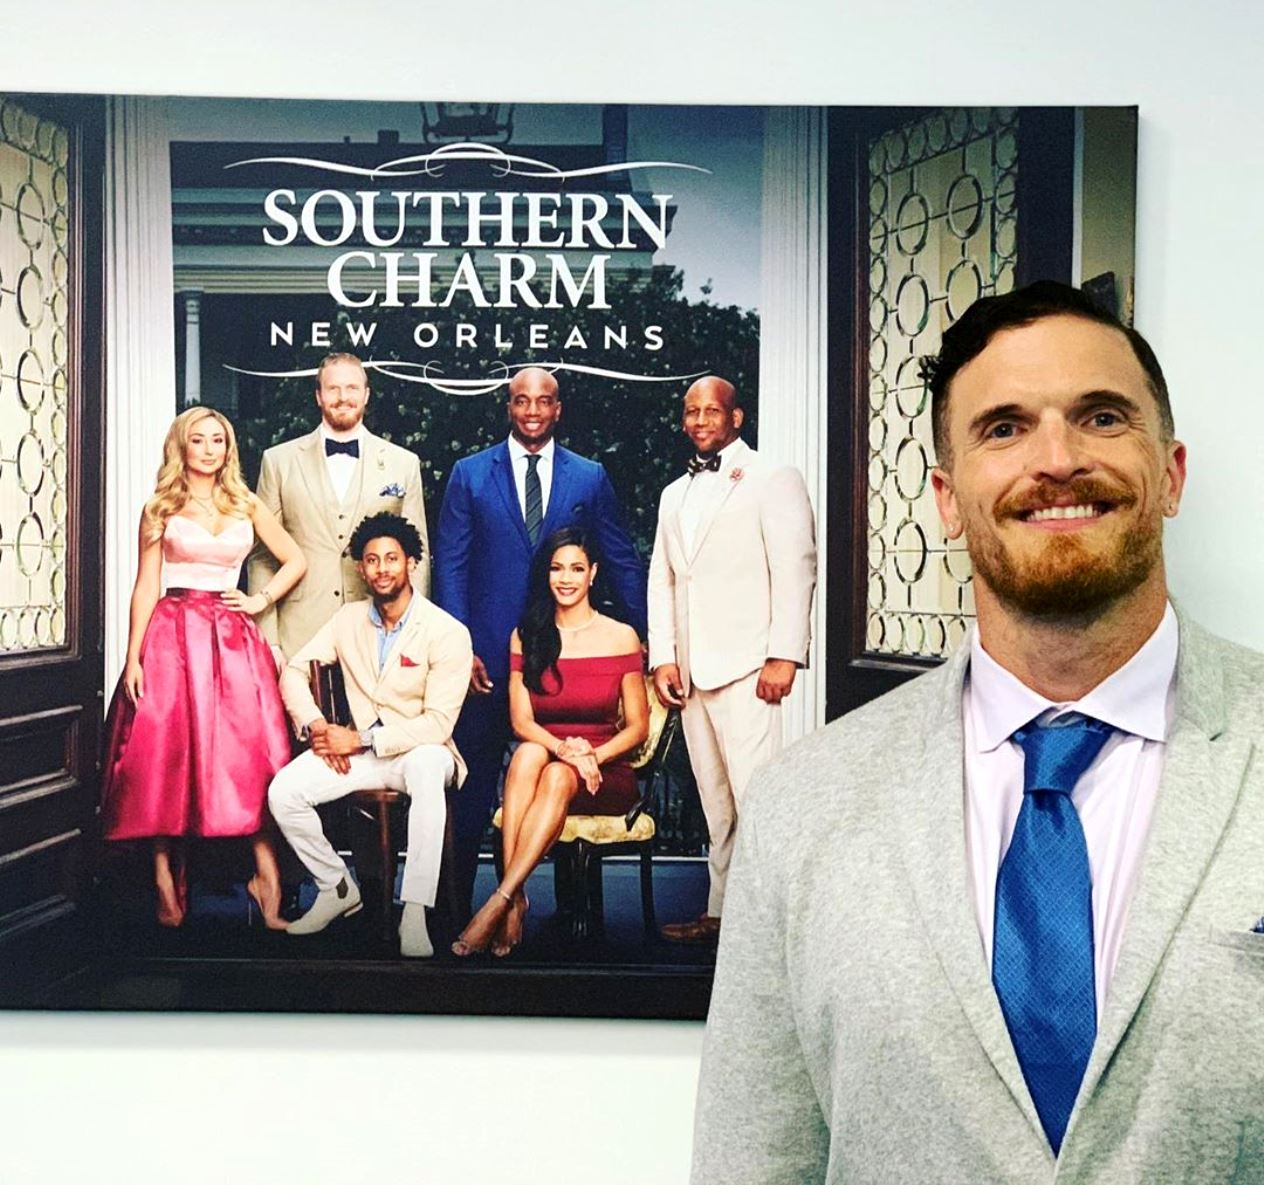 Jeff Charleston Reveals a Major Life Decision as He Addresses His Meltdown on Southern Charm New Orleans After Drinking Too Much